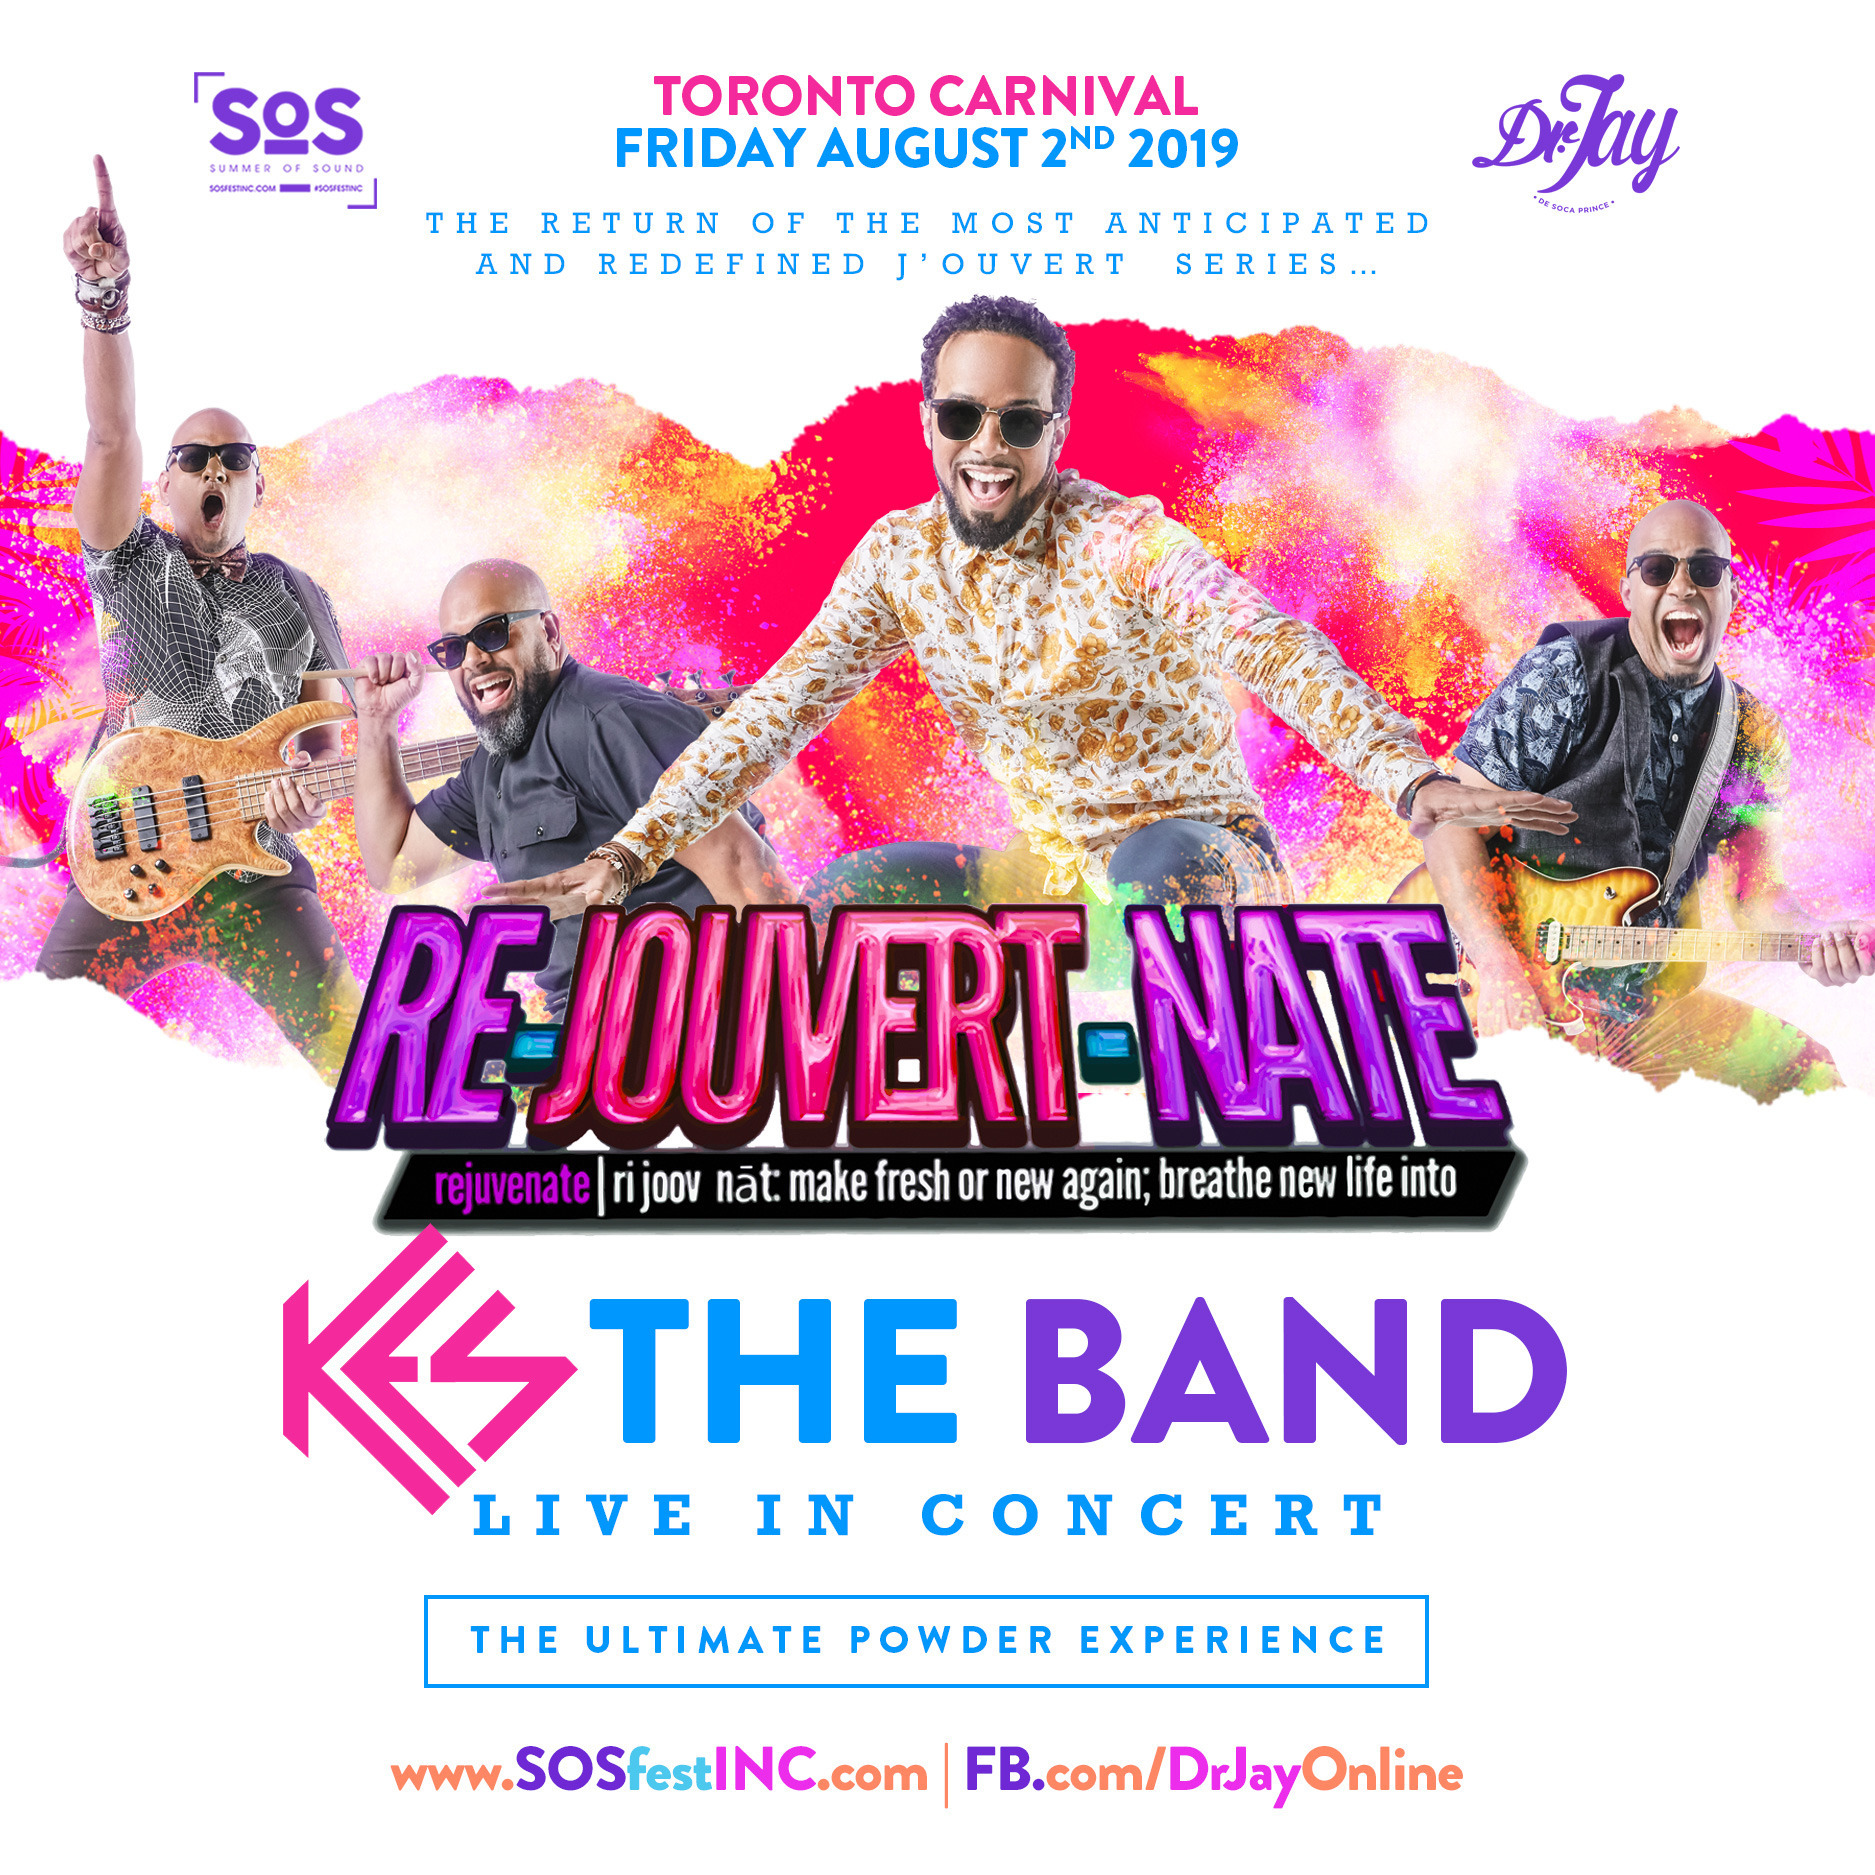 RE JOUVERT NATE   SOS FEST and Dr JAY   KES THE BAND Live in Concert